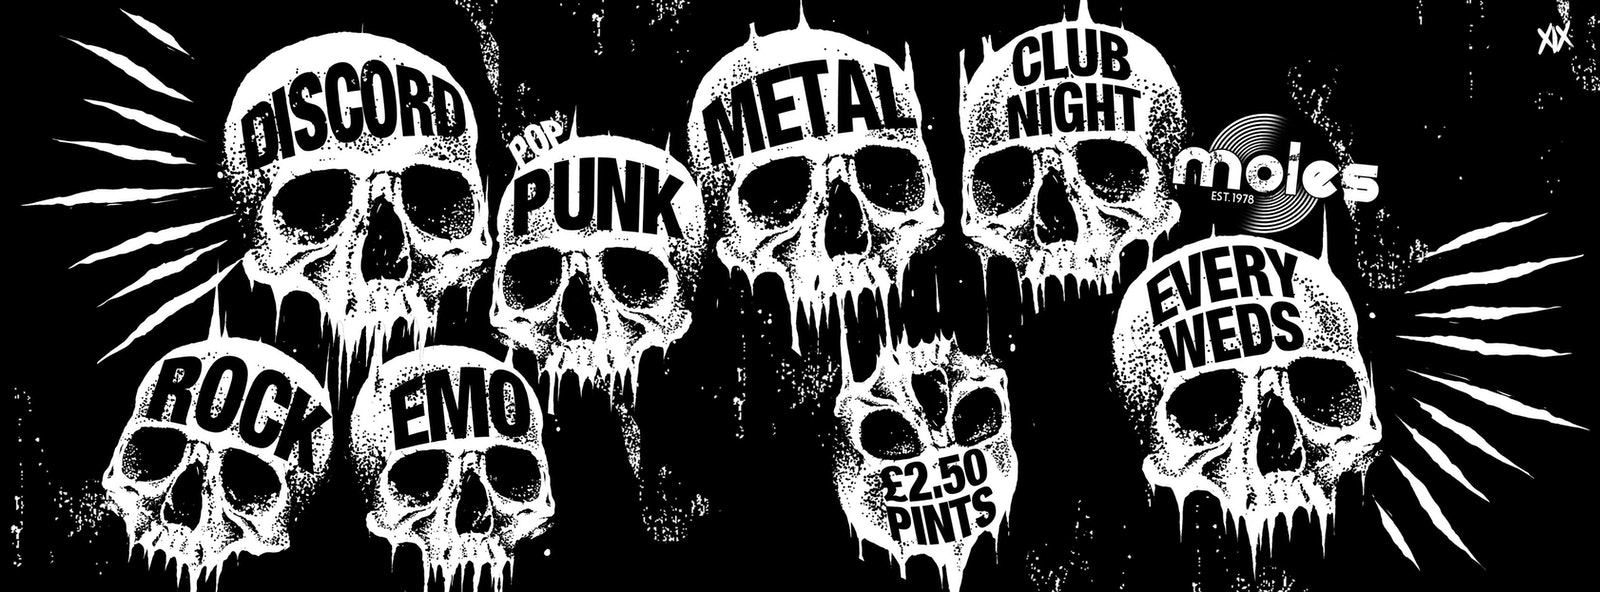 DISCORD – Rock, Emo, Pop Punk & Metal Club Night!